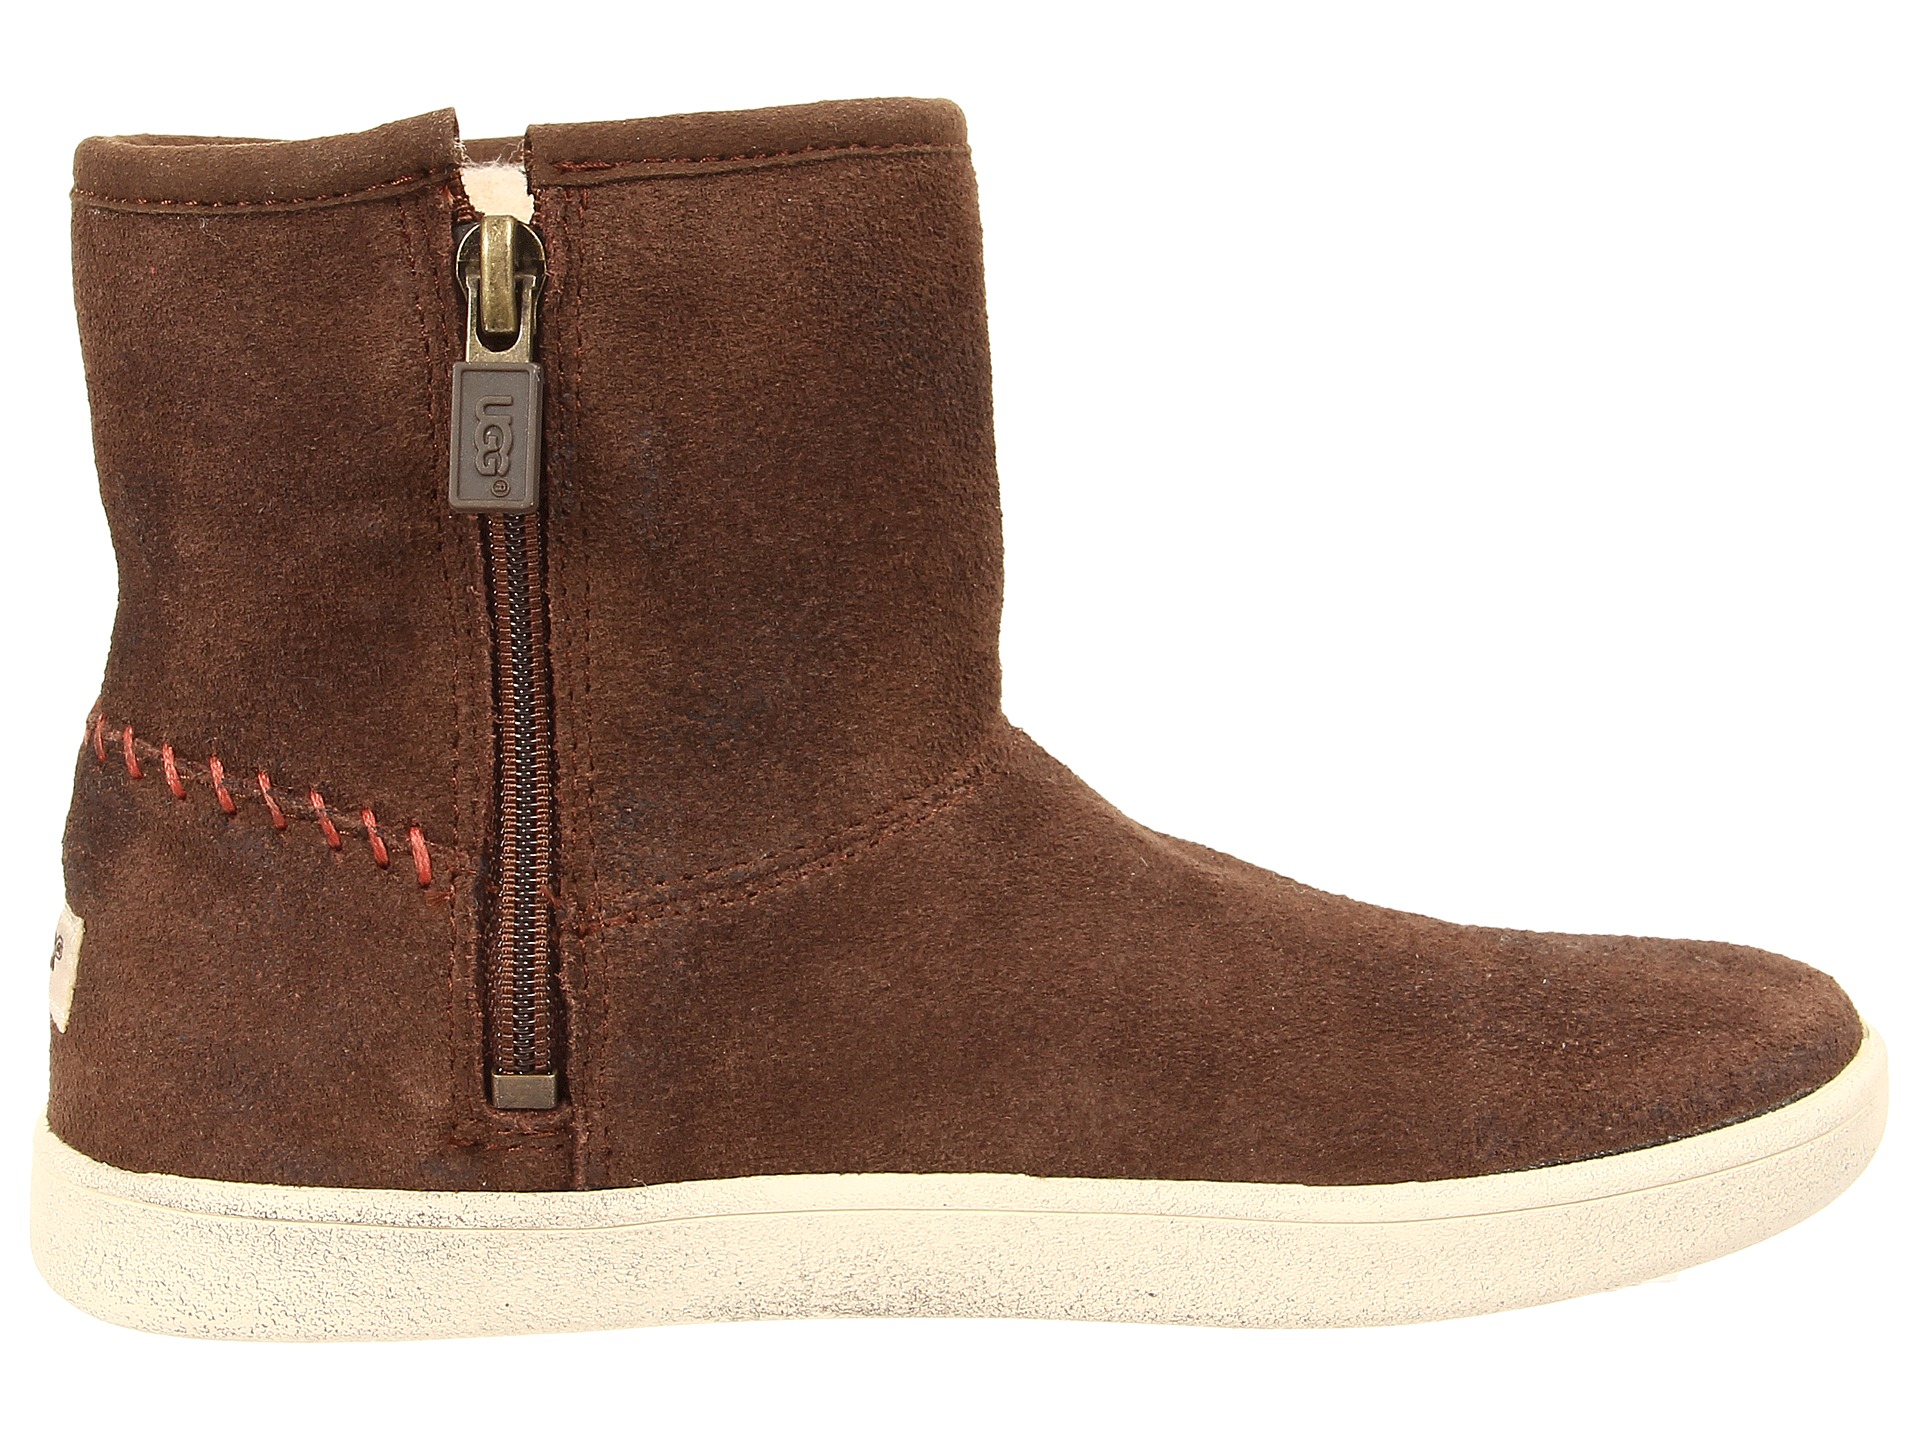 Do Ugg Shoes Run Big Or Small For Men